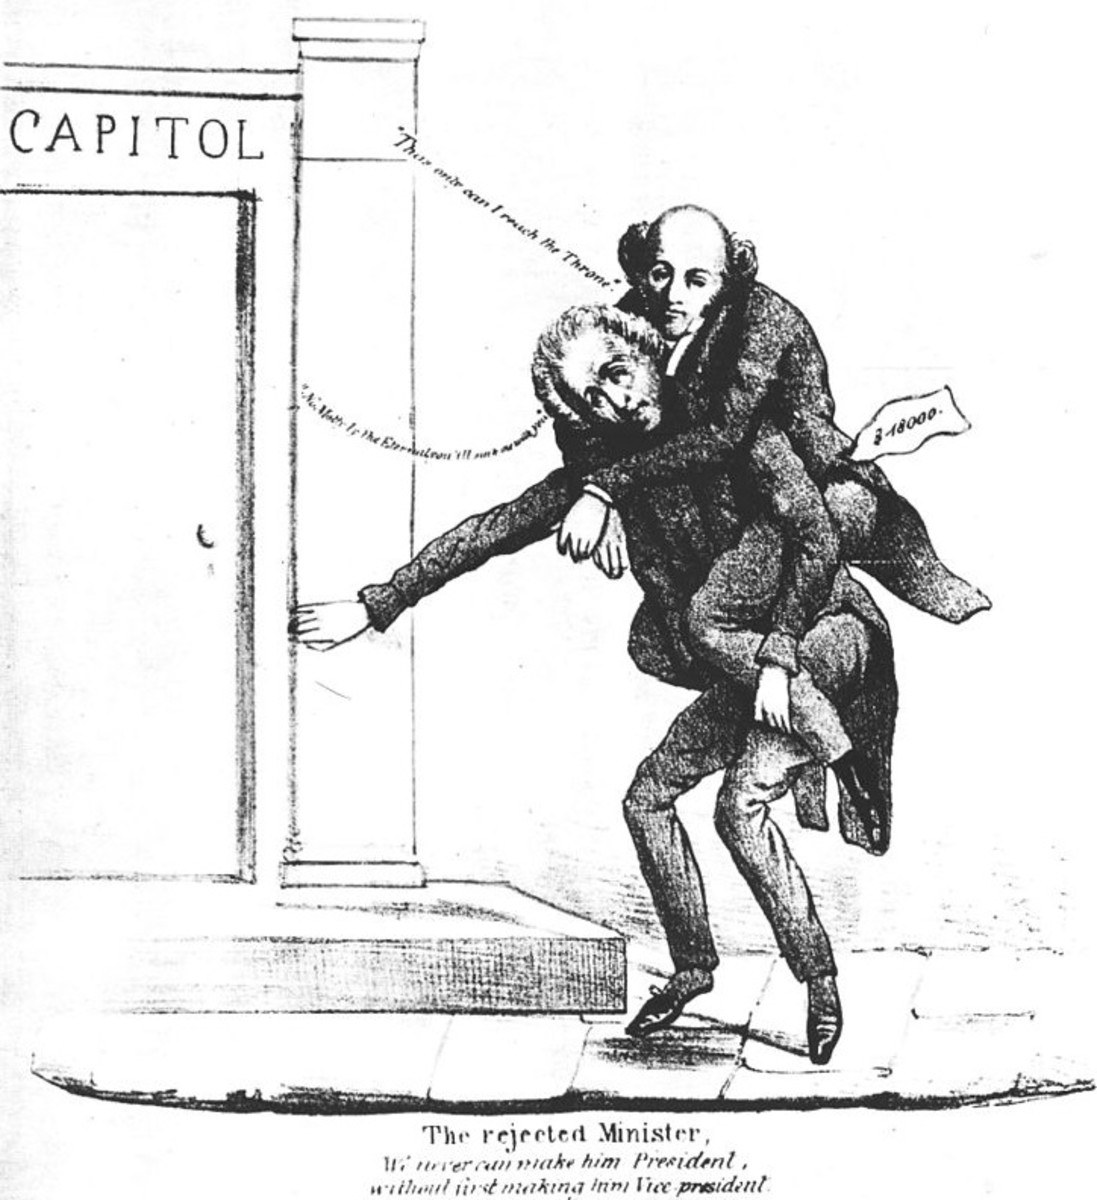 1832 Whig cartoon shows Jackson carrying Van Buren into office